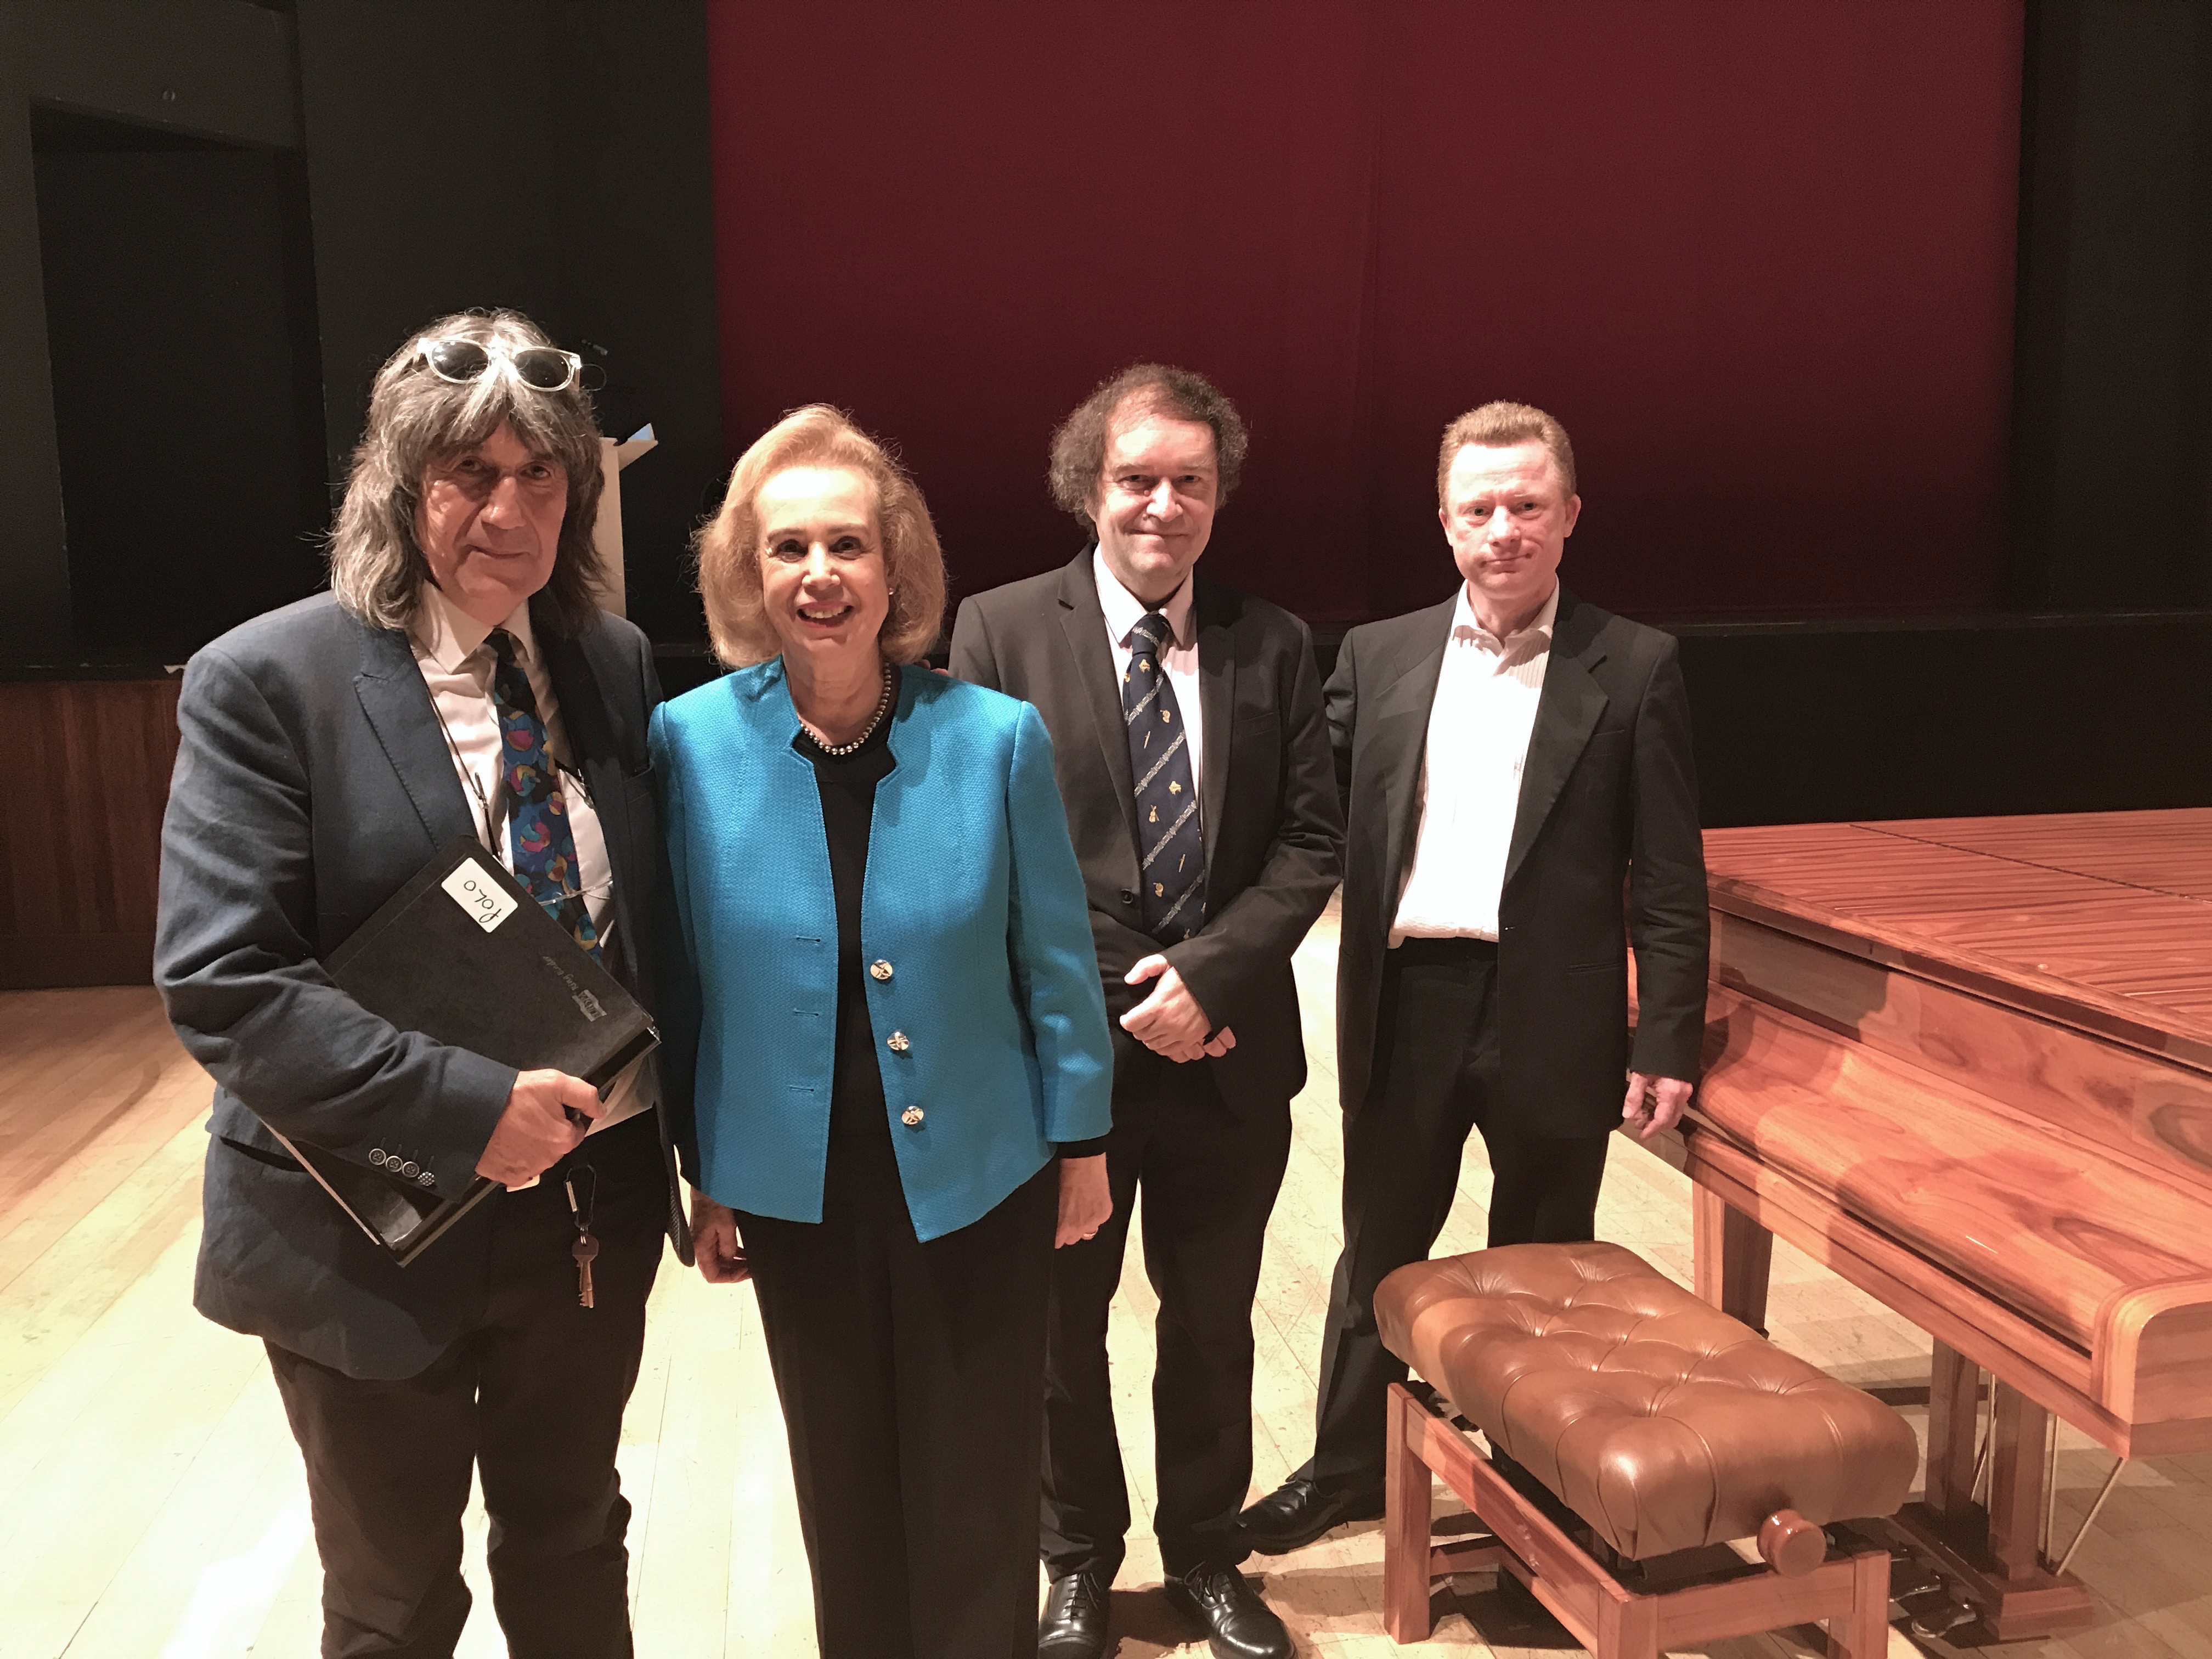 TASOULLA WITH POLO AND THE MUSICIANS